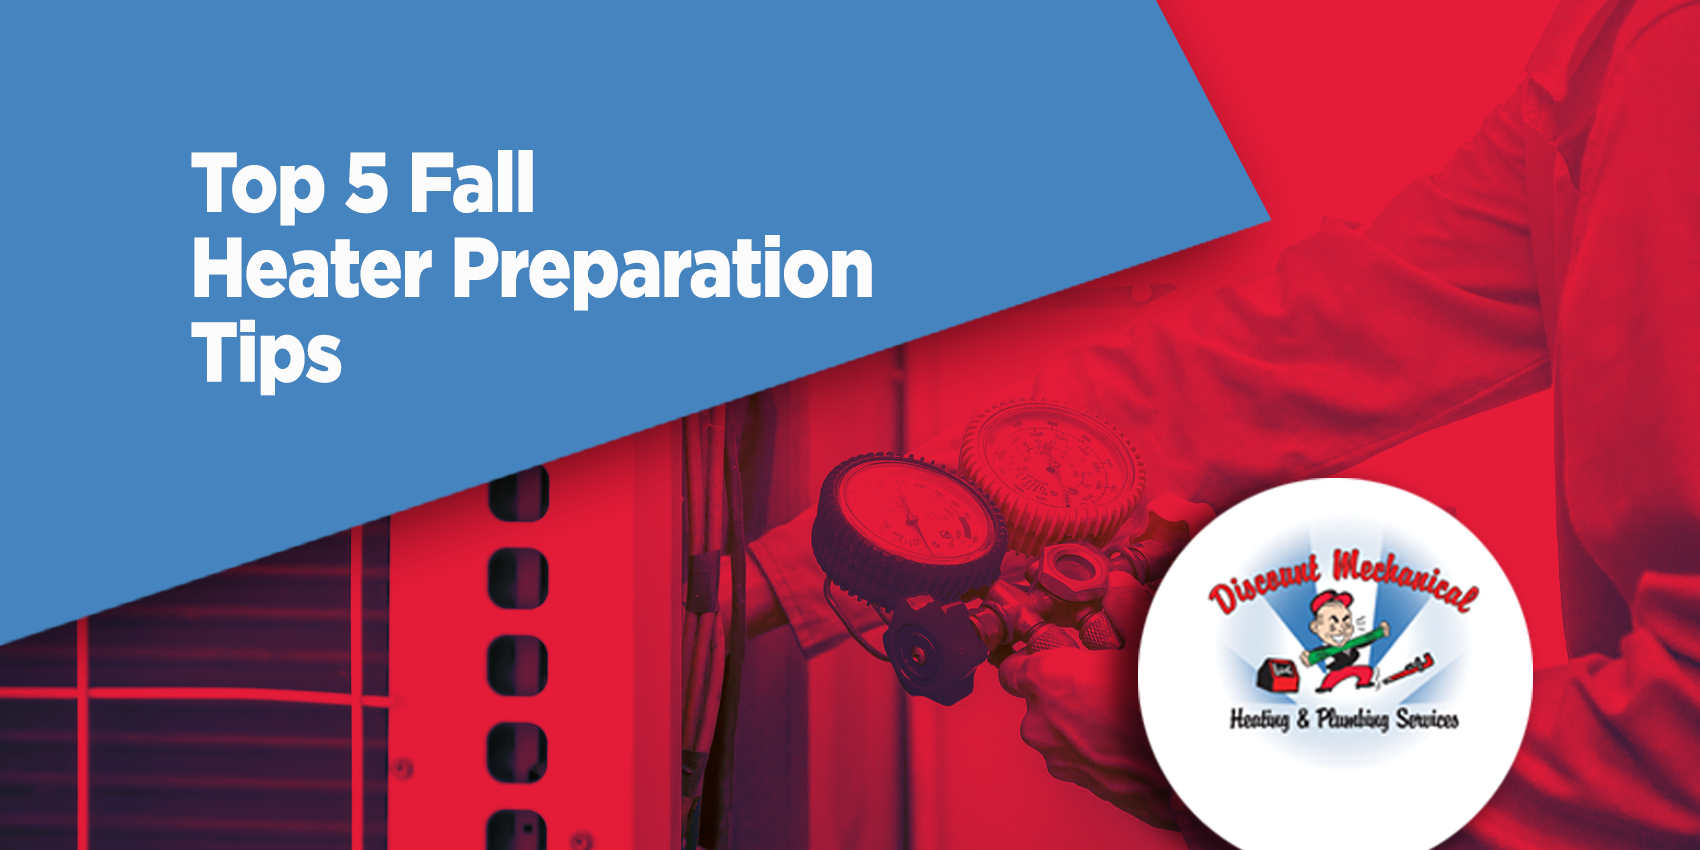 Top 5 Fall Heater Preparation Tips